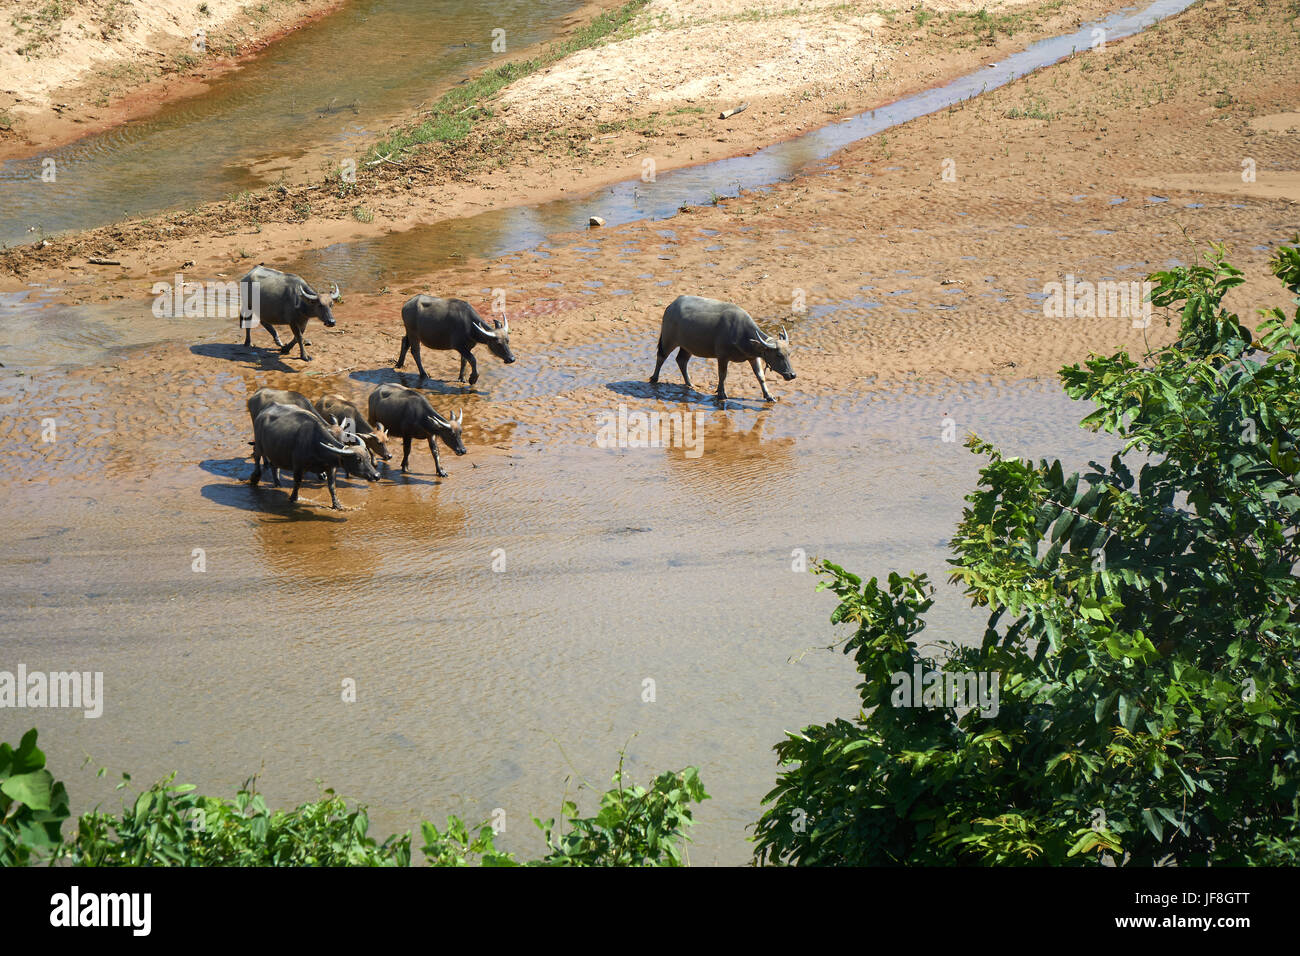 A herd of water buffalos in a clear river in the National Park of Phong Nha Ke Bang, Vietnam. - Stock Image